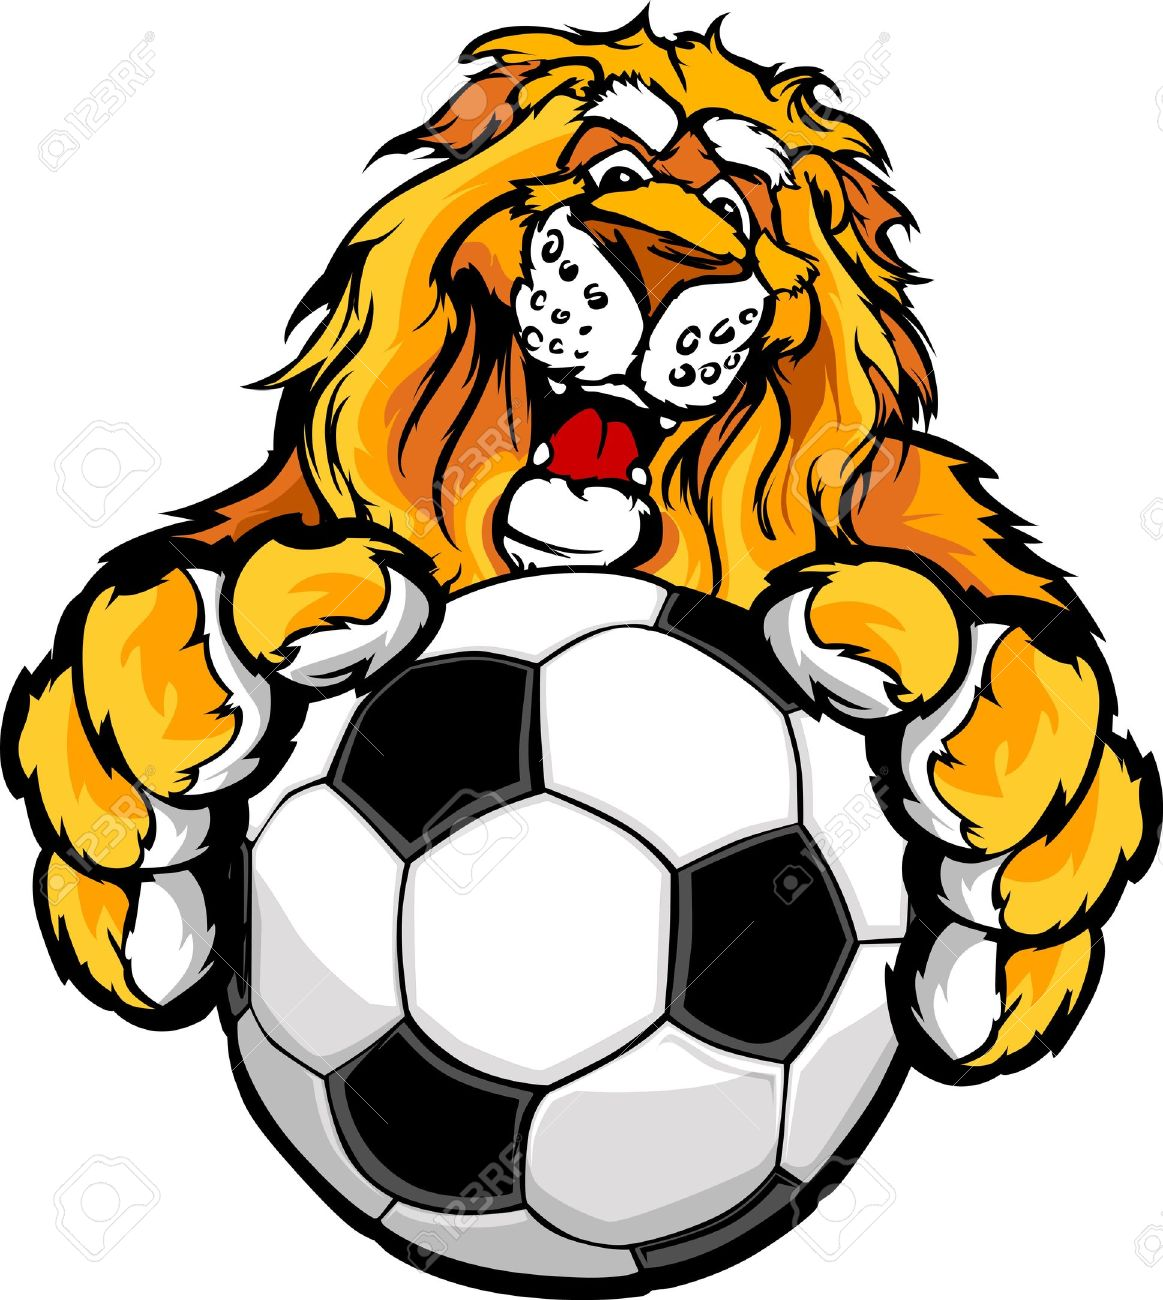 14592022 graphic mascot image of a friendly lion with paws on a soccer ball